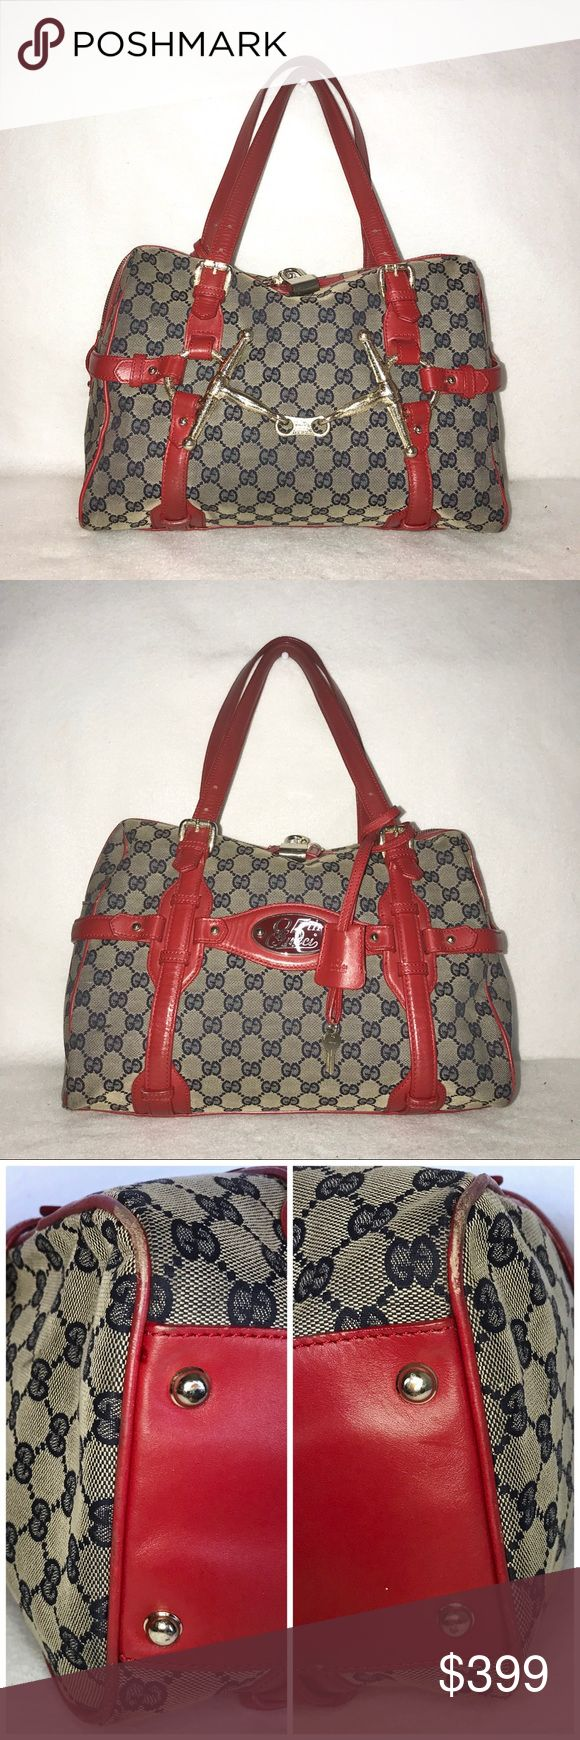 """🎈RARE🎈Ltd Edition GUCCI Anniversary Boston Bag 👉 Priced to sell - Higher trade value: $499  ♥️ RARE Ltd Edition w/ Red Leather Trim ♥️  1 interior pocket. Top zip closure w/ lock & keys (fully functional).  Interior is clean. Leather trim is freshly polished. Exterior - general wear. Some scuffing on the corners. Minimal scratches on hardware.  H: 11"""" L: 14"""" D: 6.5"""" Handle Drop: 8""""  All of my bags are carefully wrapped & shipped in boxes to ensure safe delivery. Bags Hobos"""